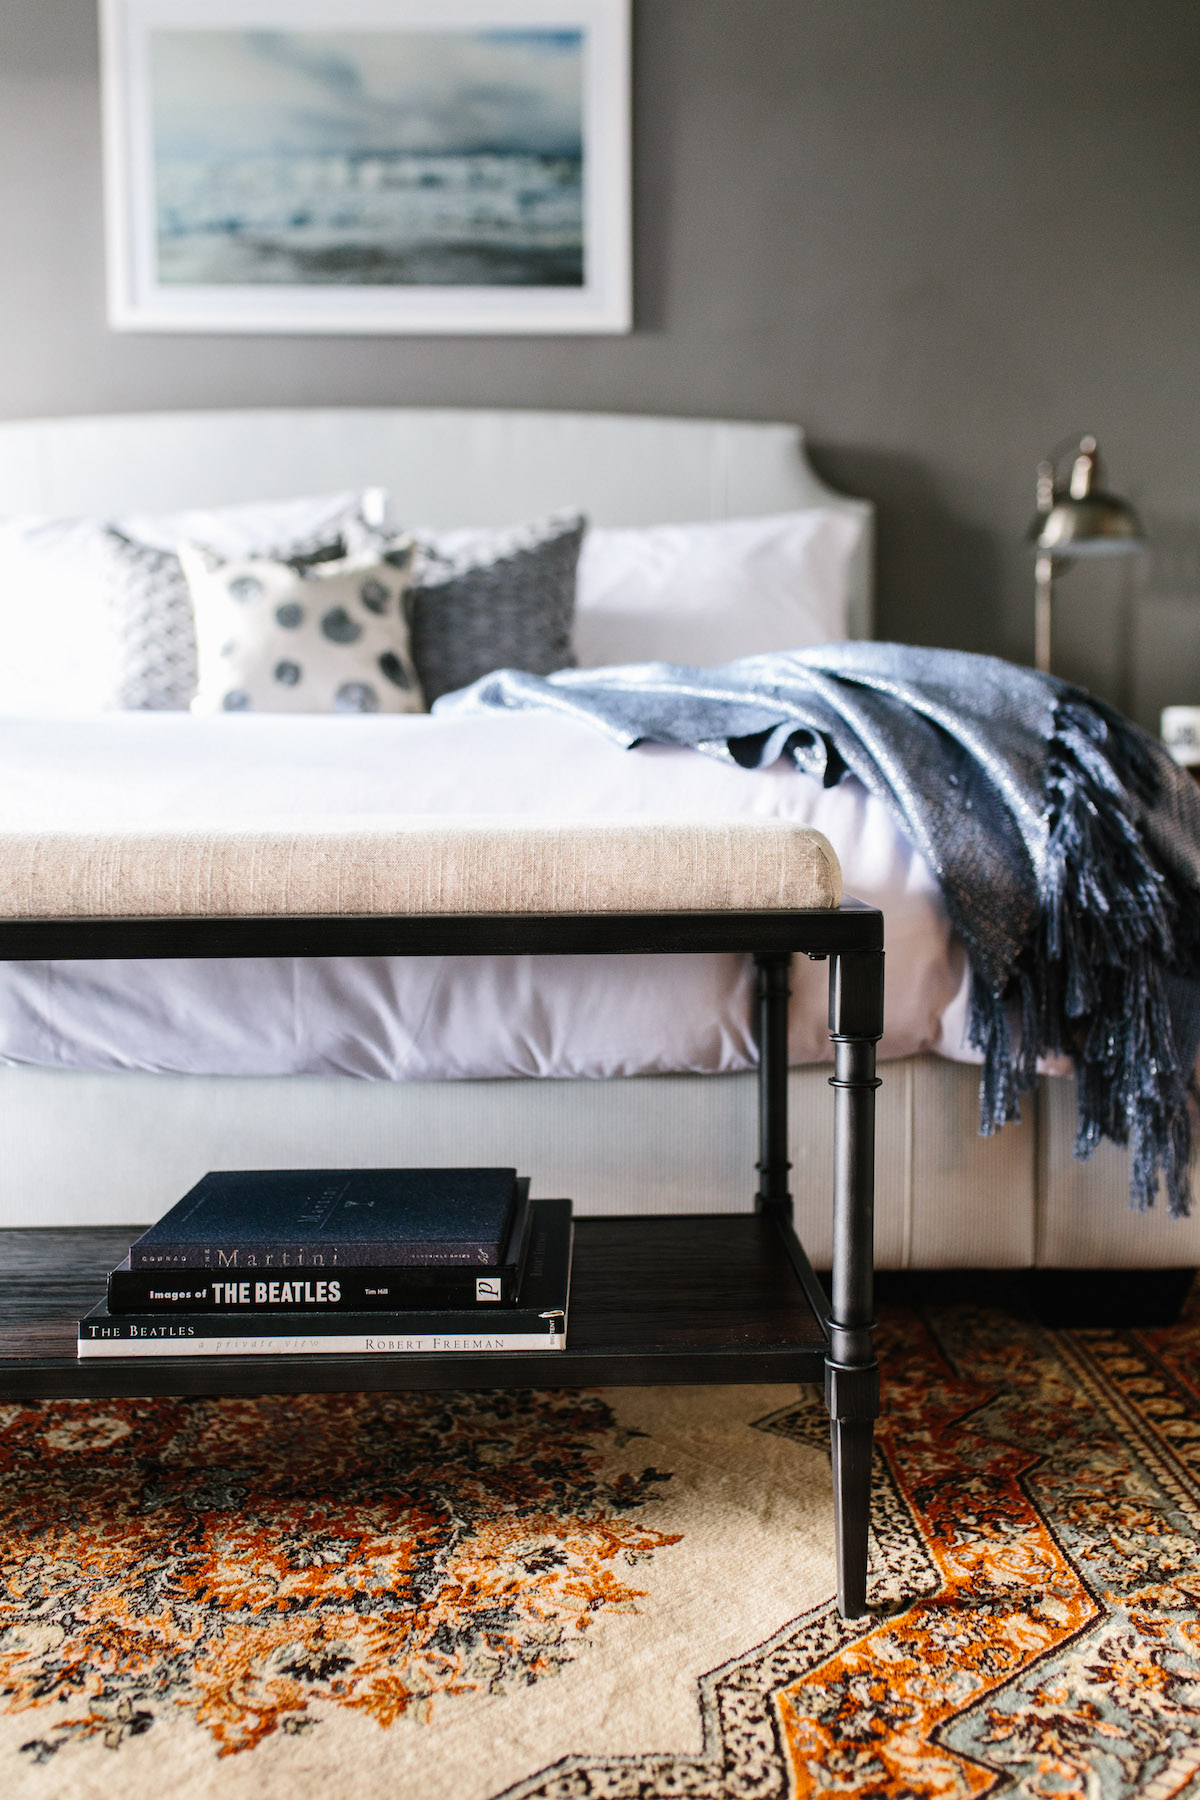 Amazing Sources Nightstands u Vintage Craigslist Wall Color u Sherwin Williams Cityscape Ceiling Color u Sherwin Williams Atmospheric Bedside lamps